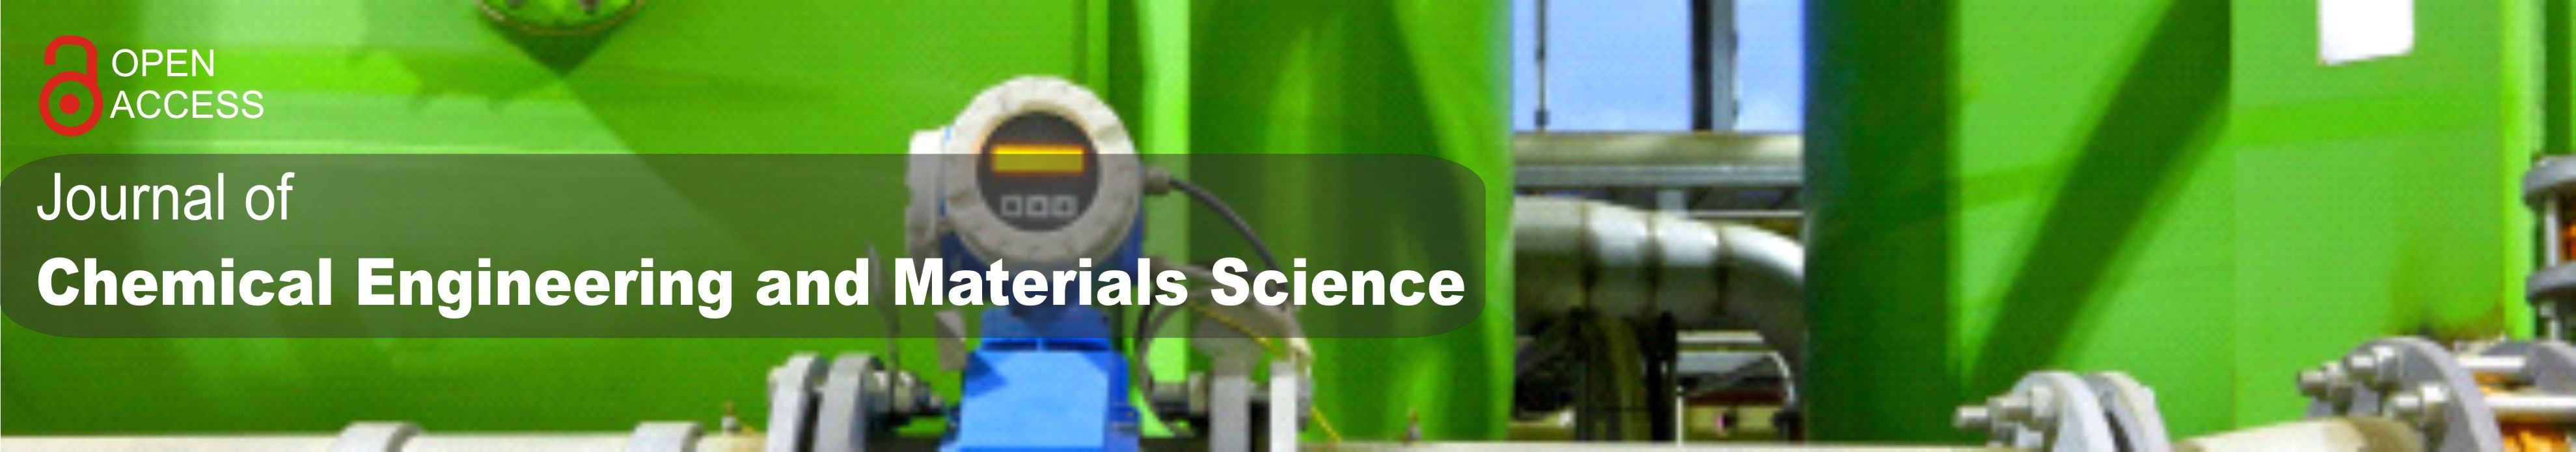 Journal of Chemical Engineering and Materials Science